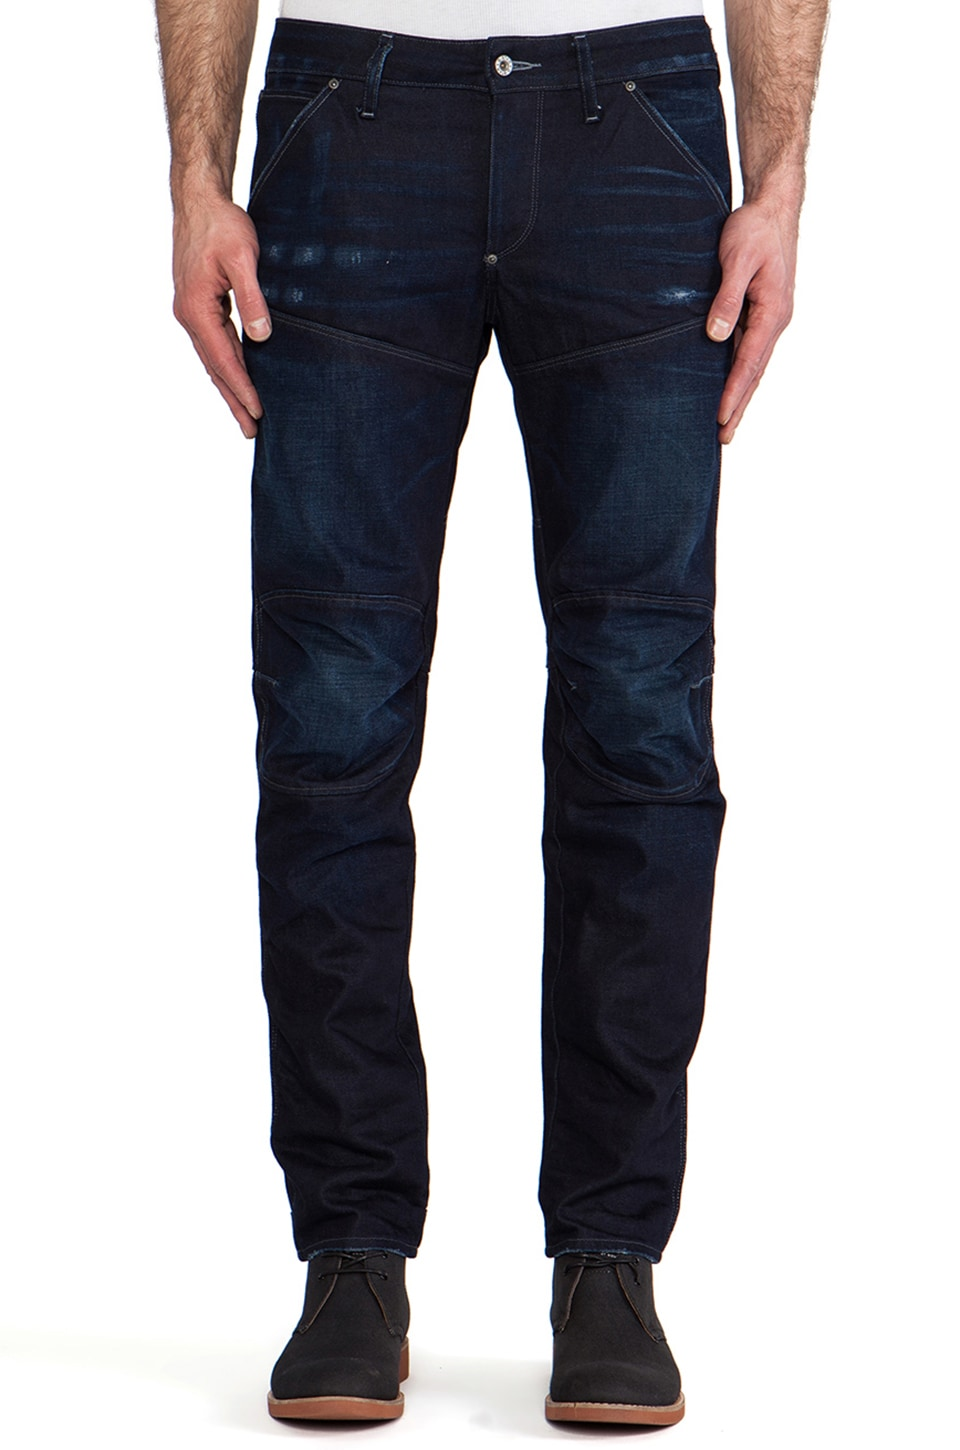 G-Star 5620 3D Low Tapered Bicc Denim in Dark Aged